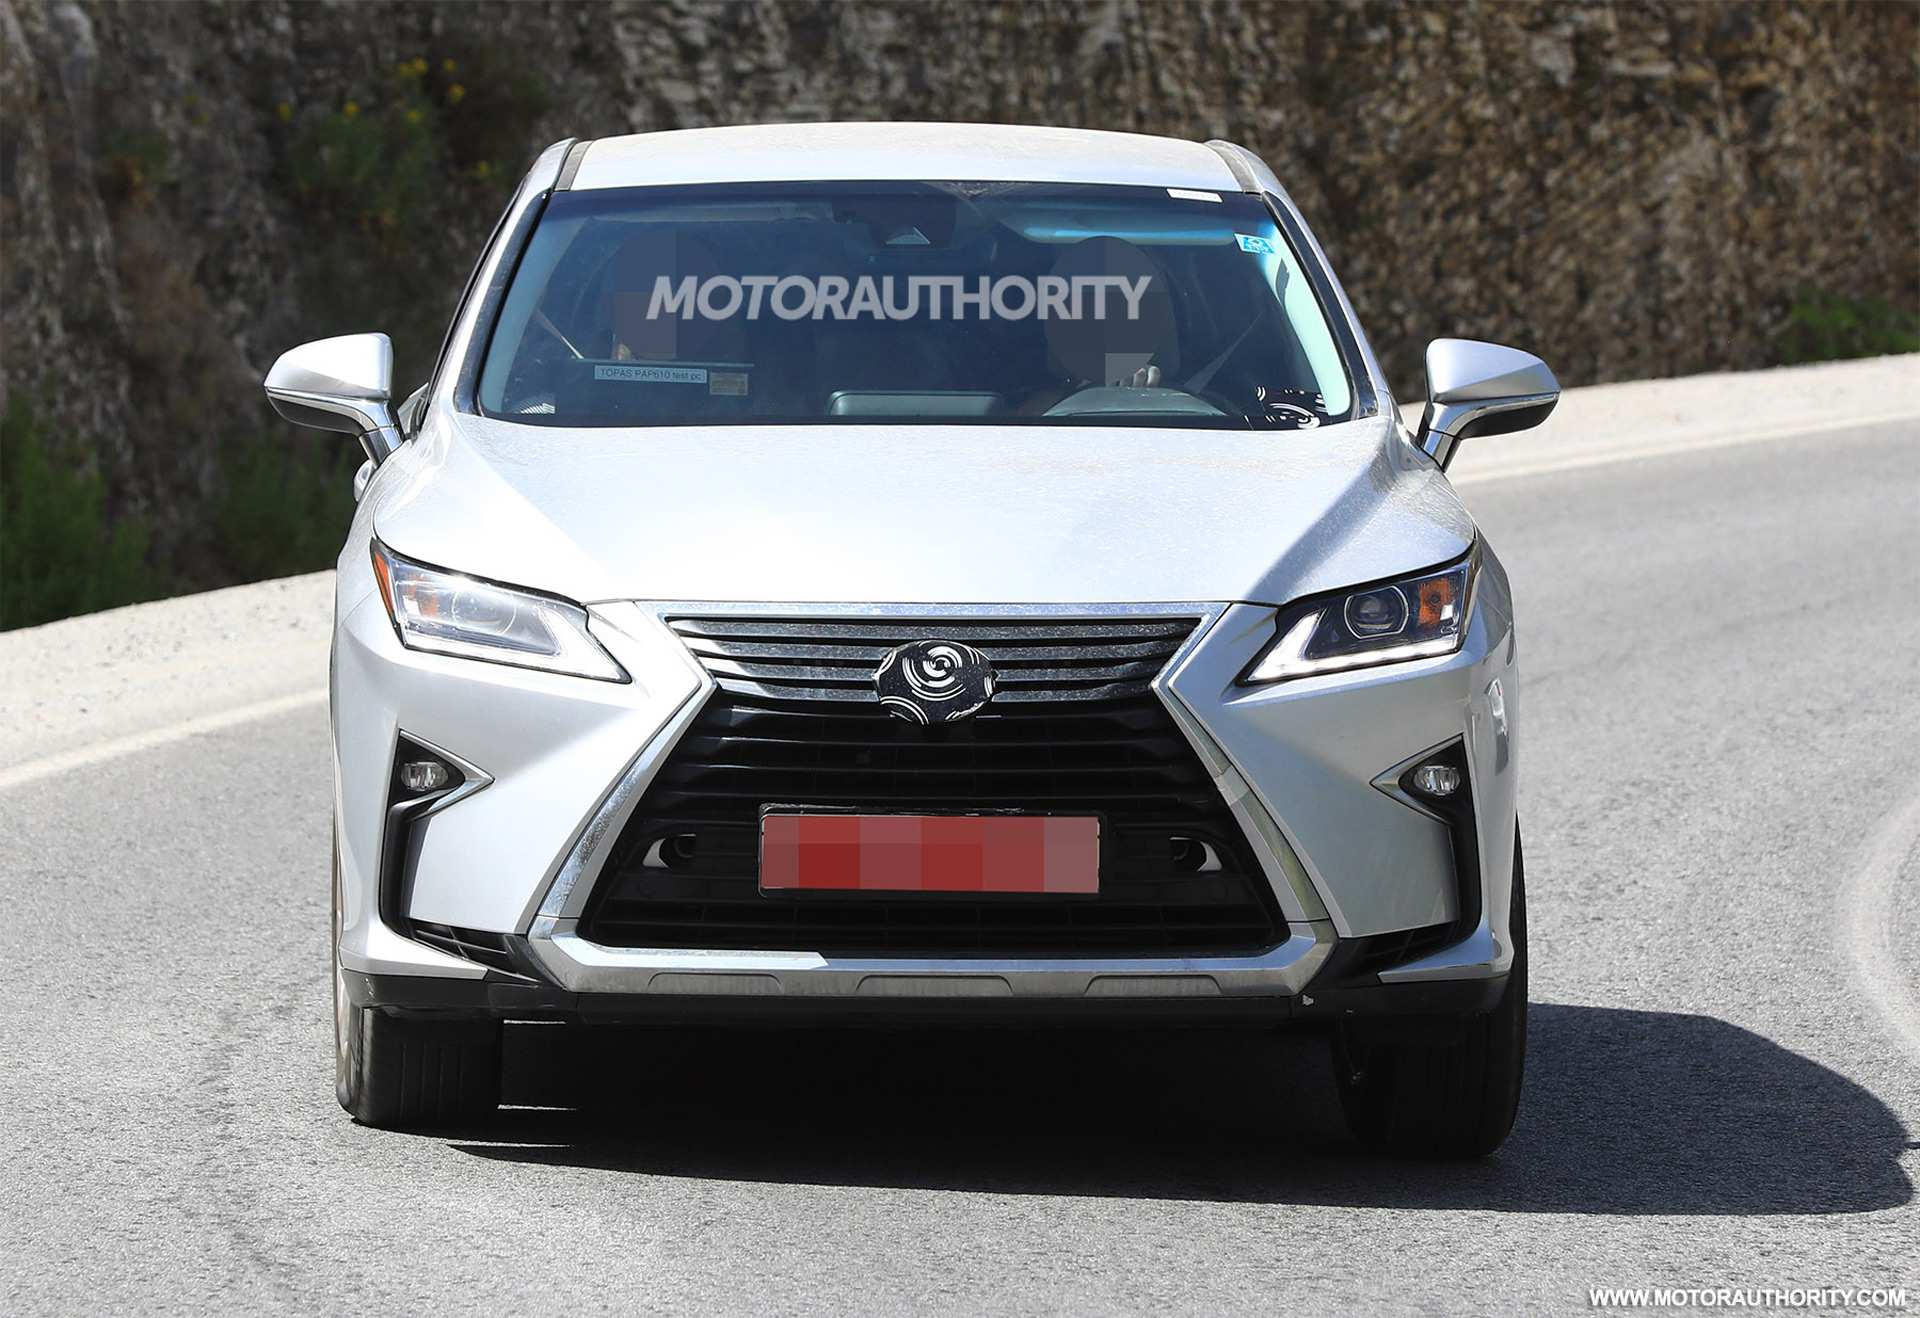 89 New Lexus Rx Facelift 2019 First Drive for Lexus Rx Facelift 2019